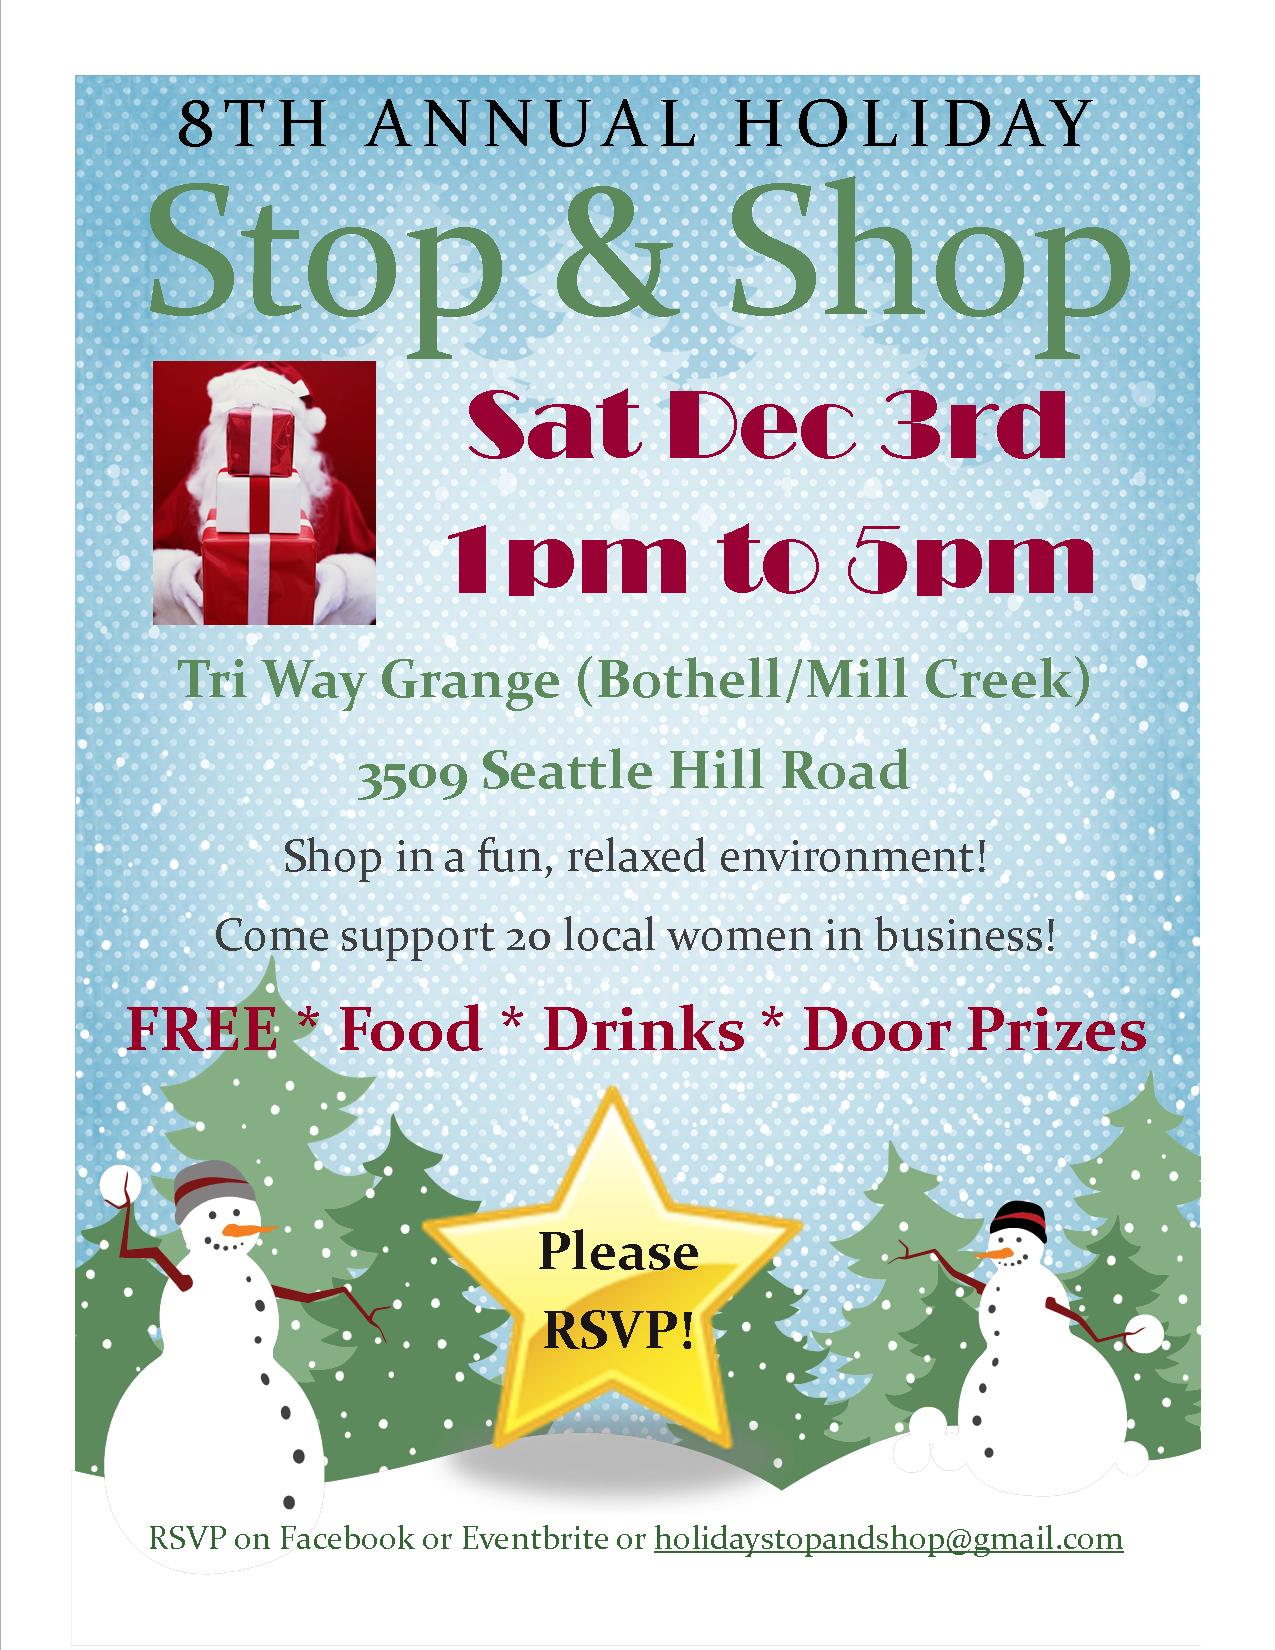 8th Annual Holiday Stop & Shop